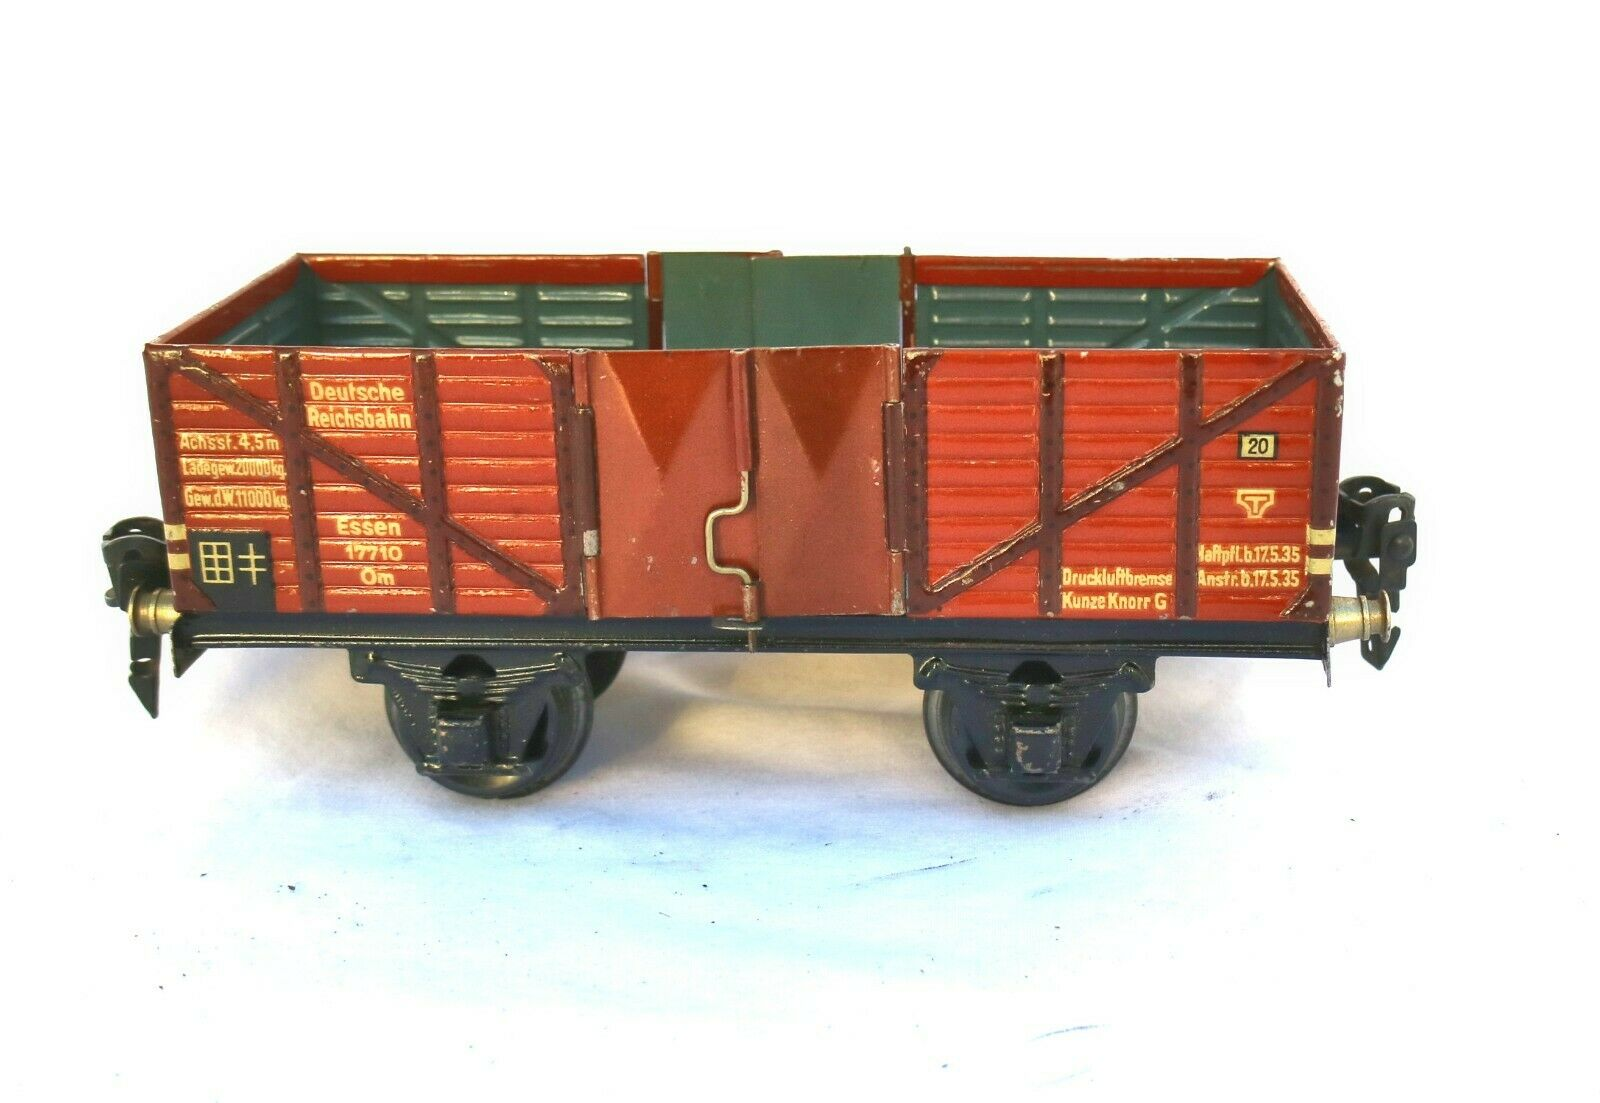 900M  Vintage marklin O Gauge High Sided Open Goods Wagon 17710